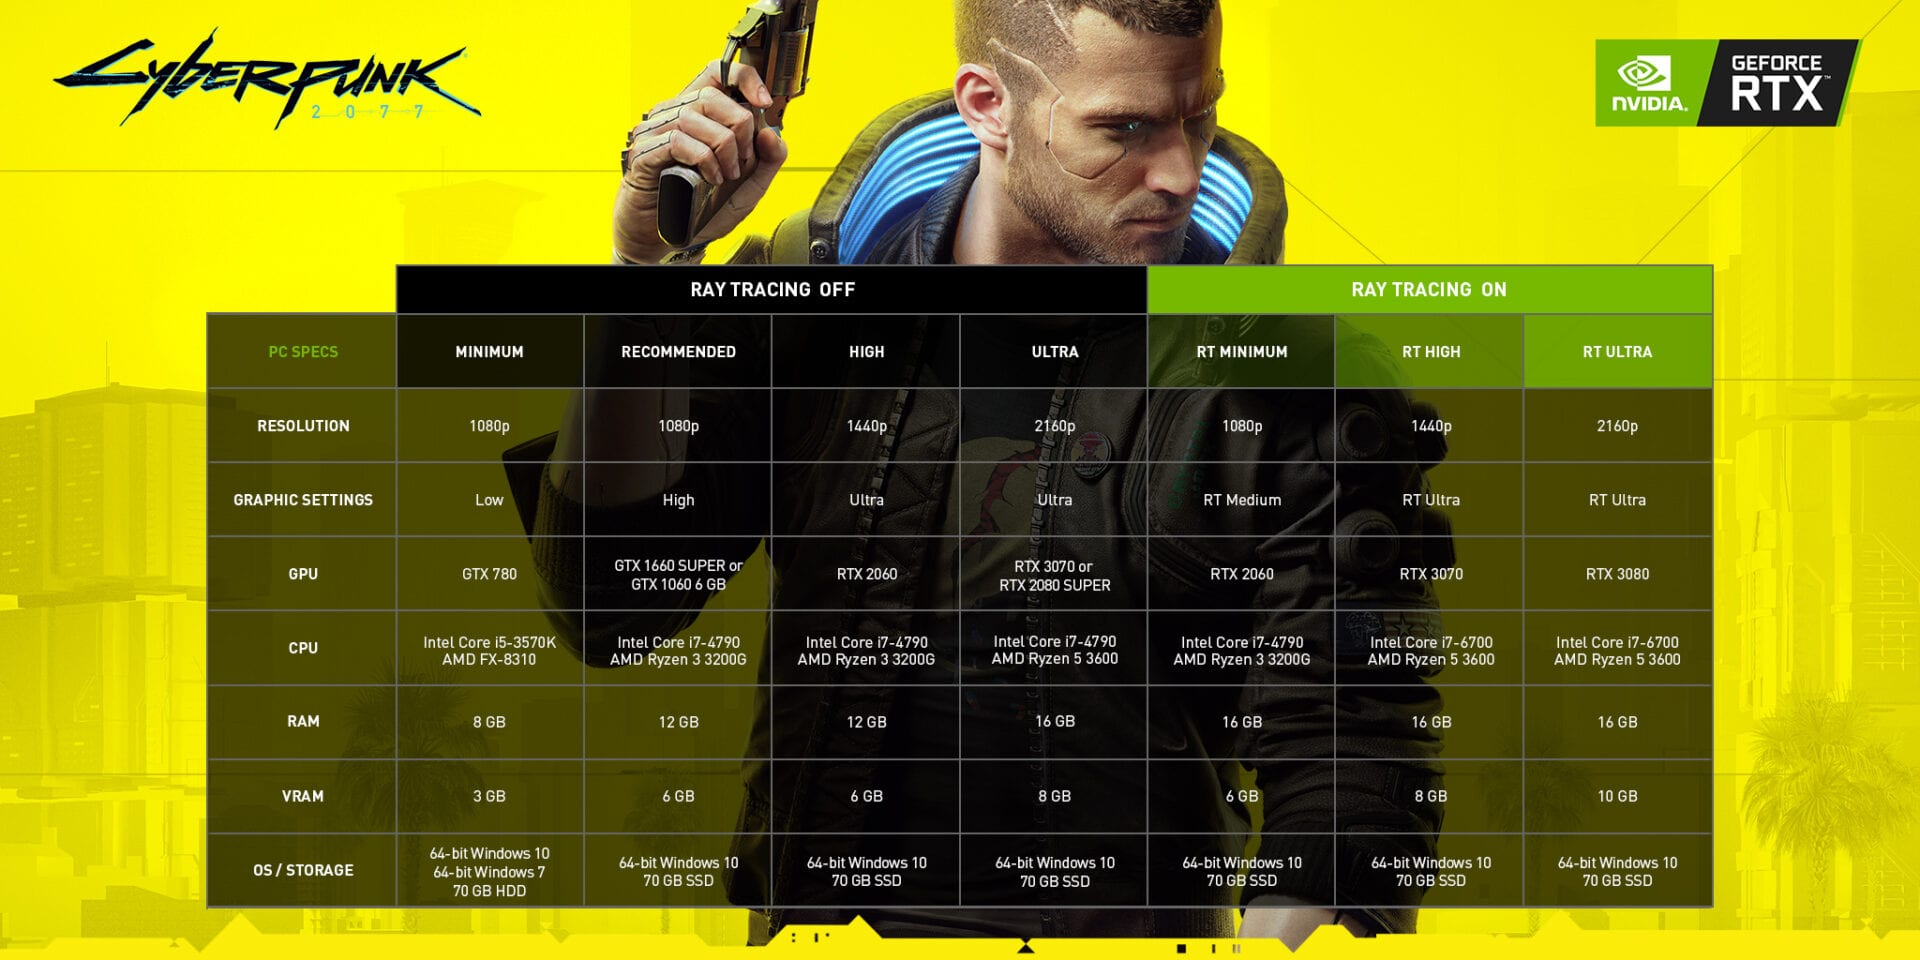 cyberpunk-2077-nvidia-geforce-recommended-system-specs-scaled-2.jpg